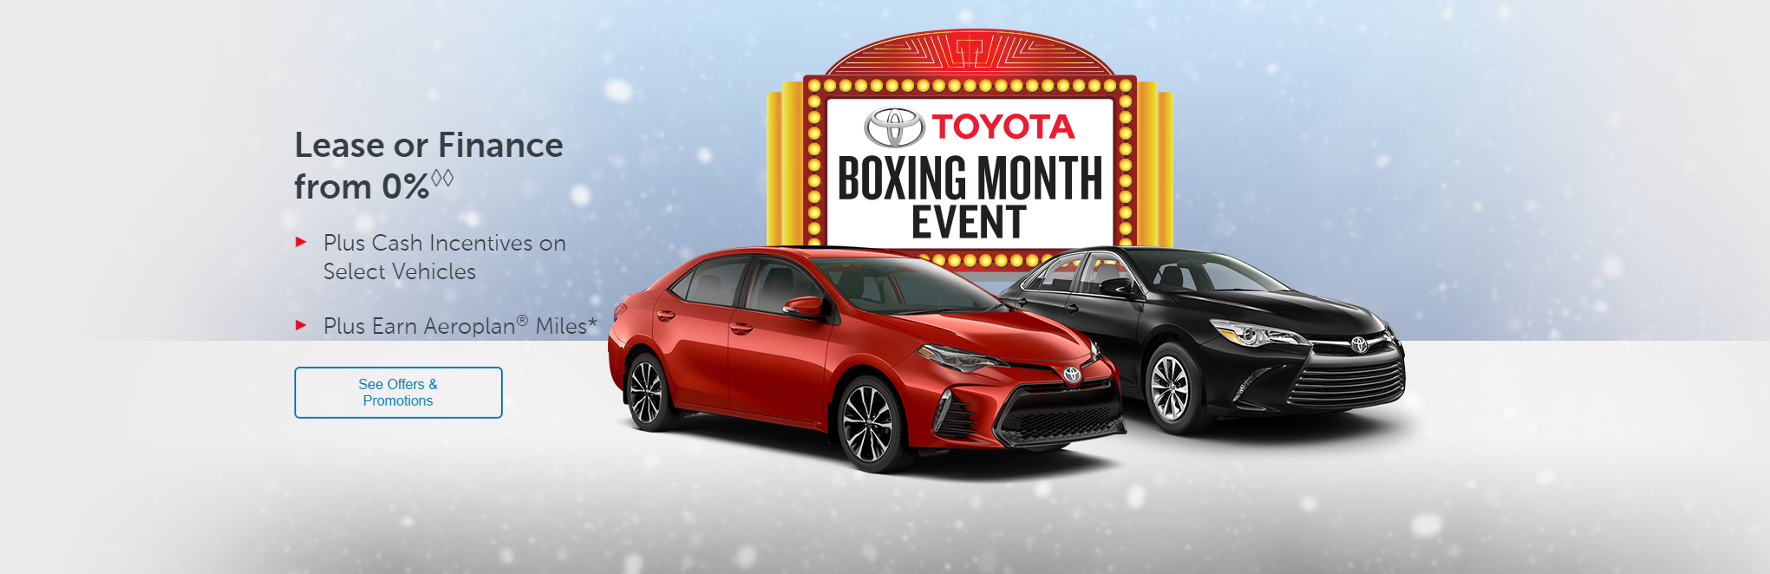 Toyota Boxing Month Event: Toyota Canada Incentives in Toronto